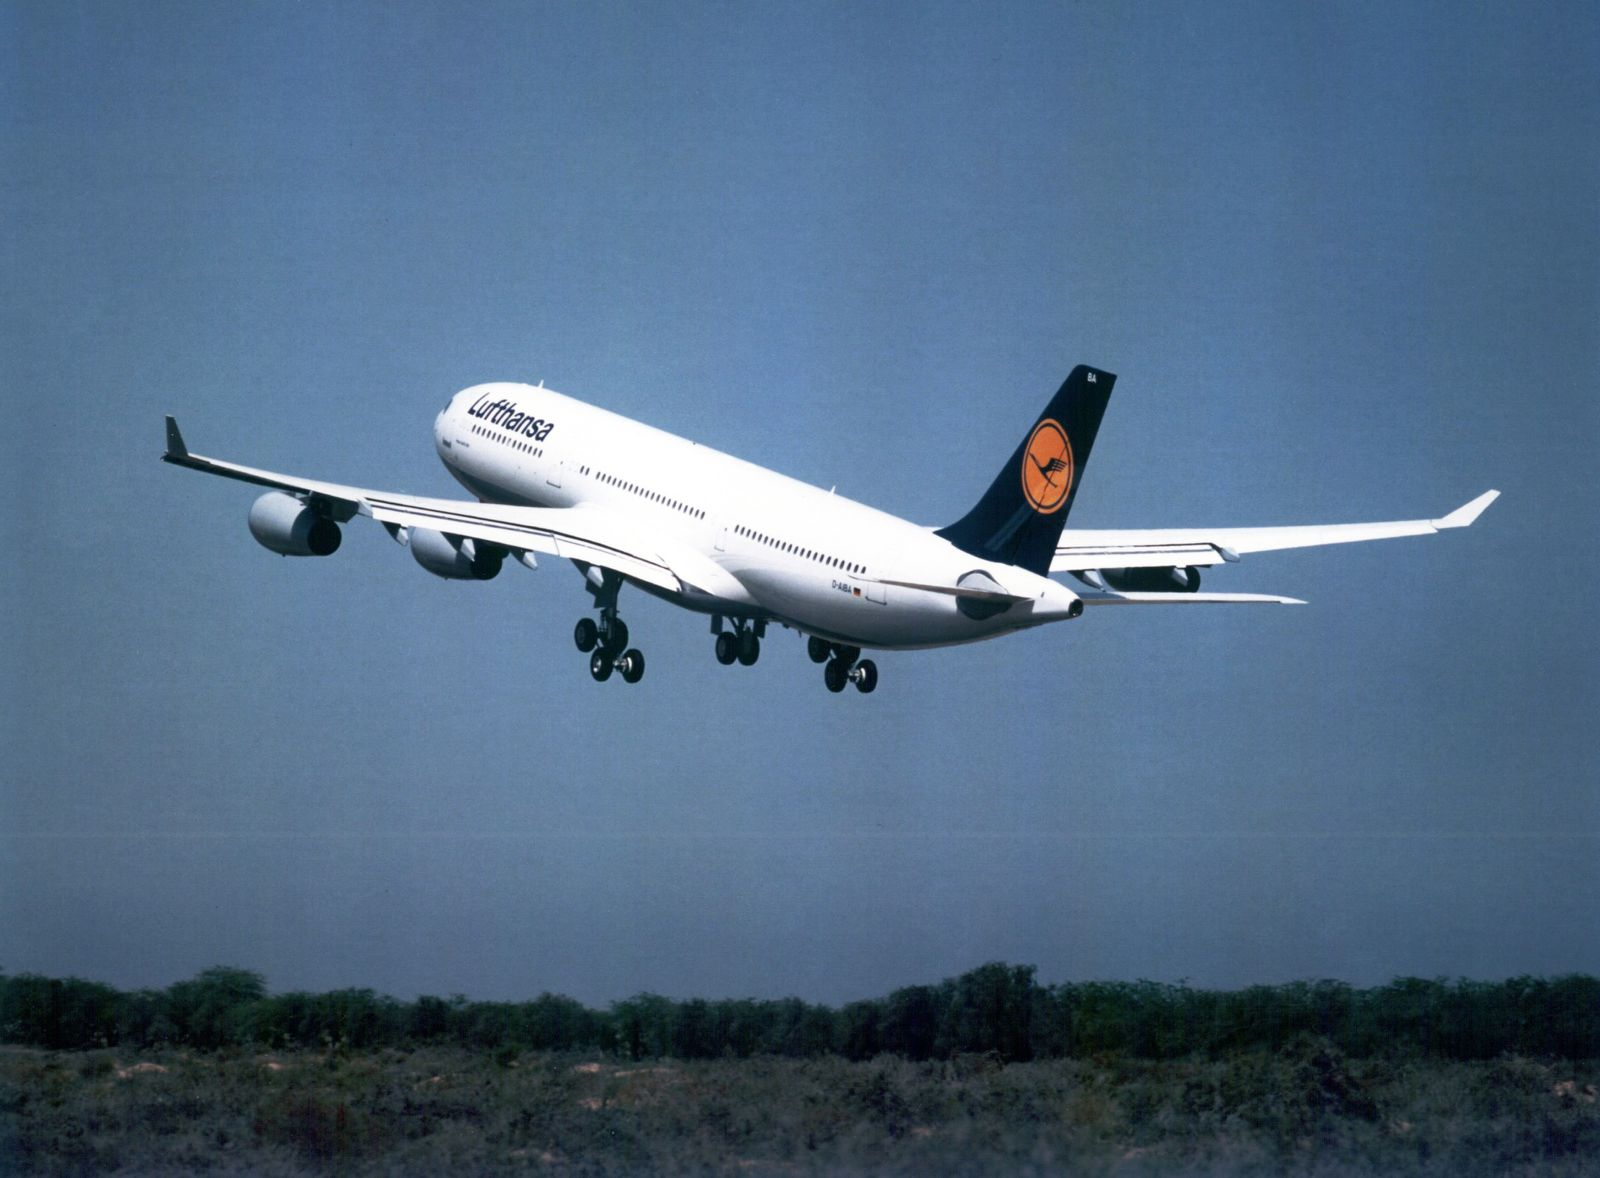 Airbus A340-200 / Dreamliner